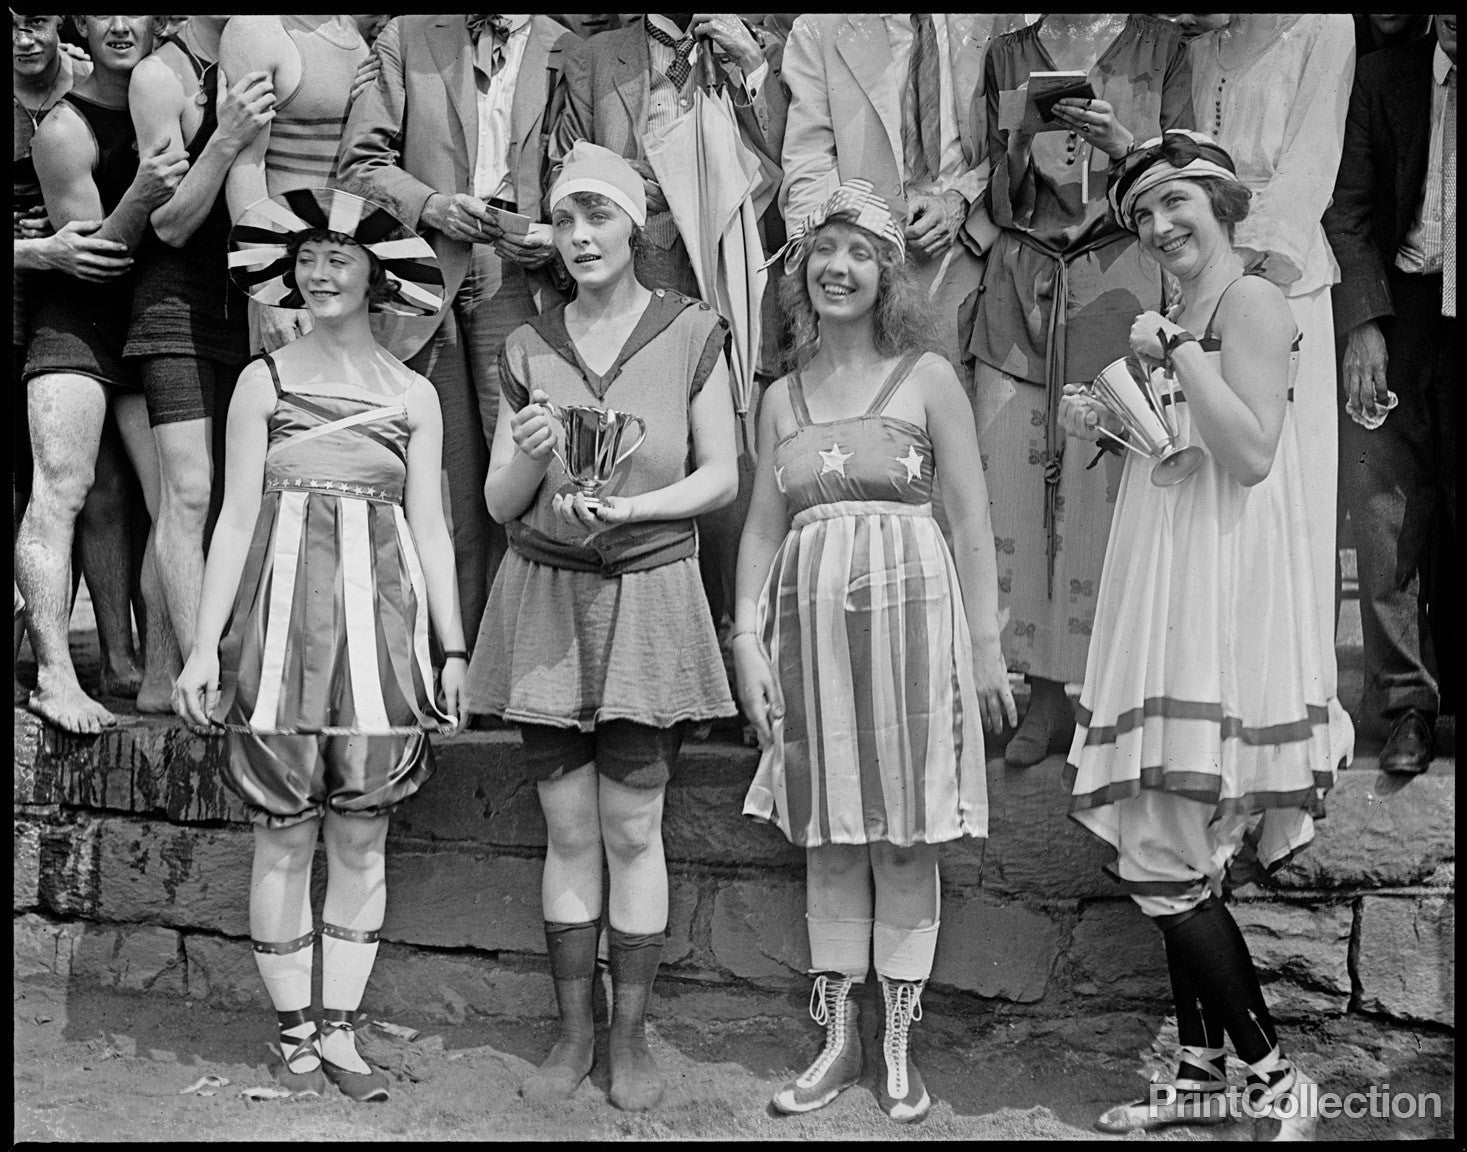 Bathing Beach Parade, 1919